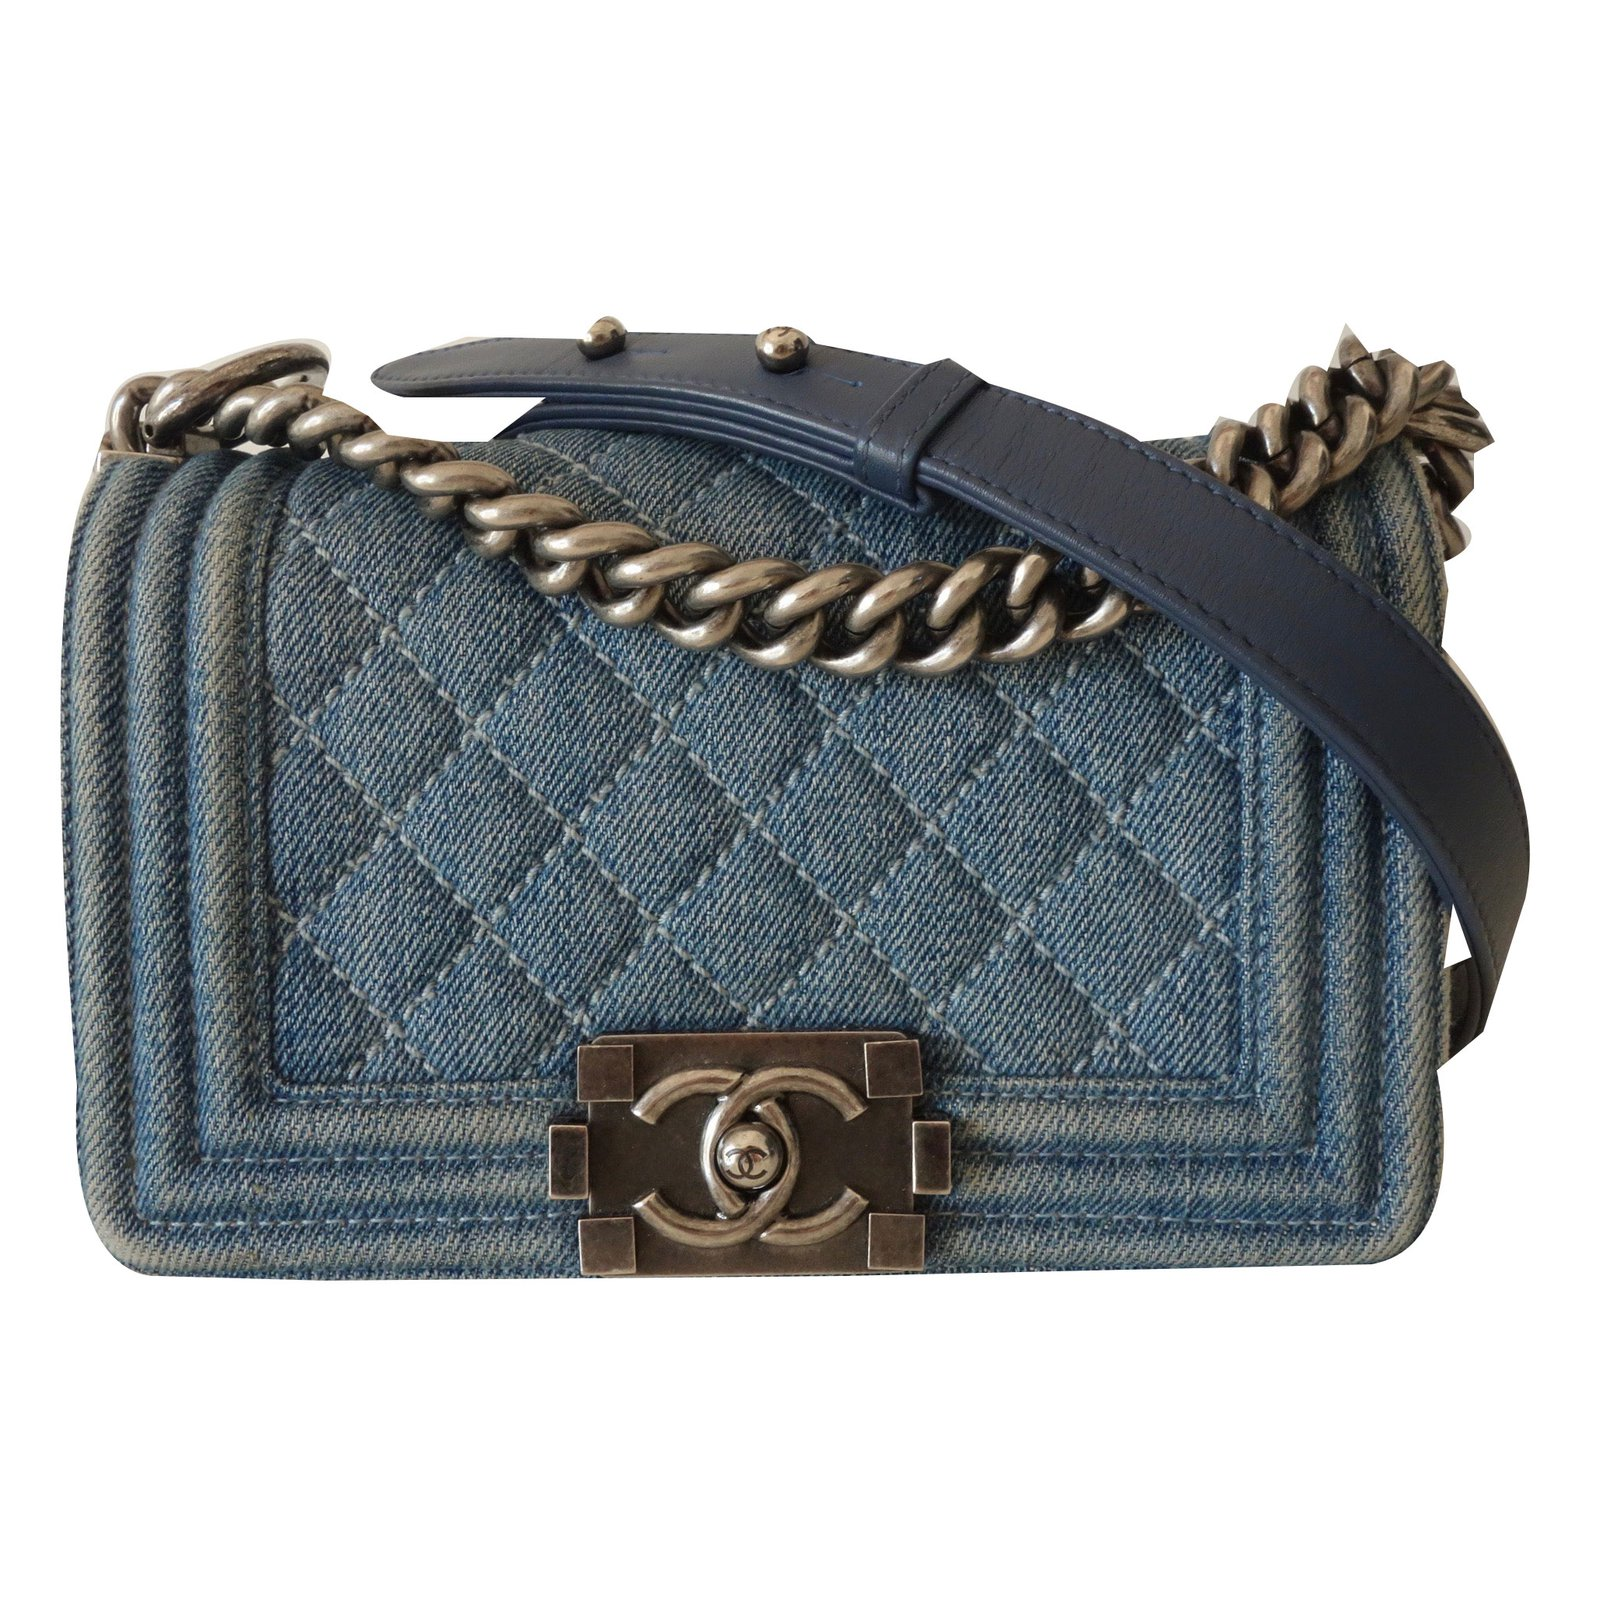 Chanel Blue Jean Boy Bag Handbags Denim Ref 53743